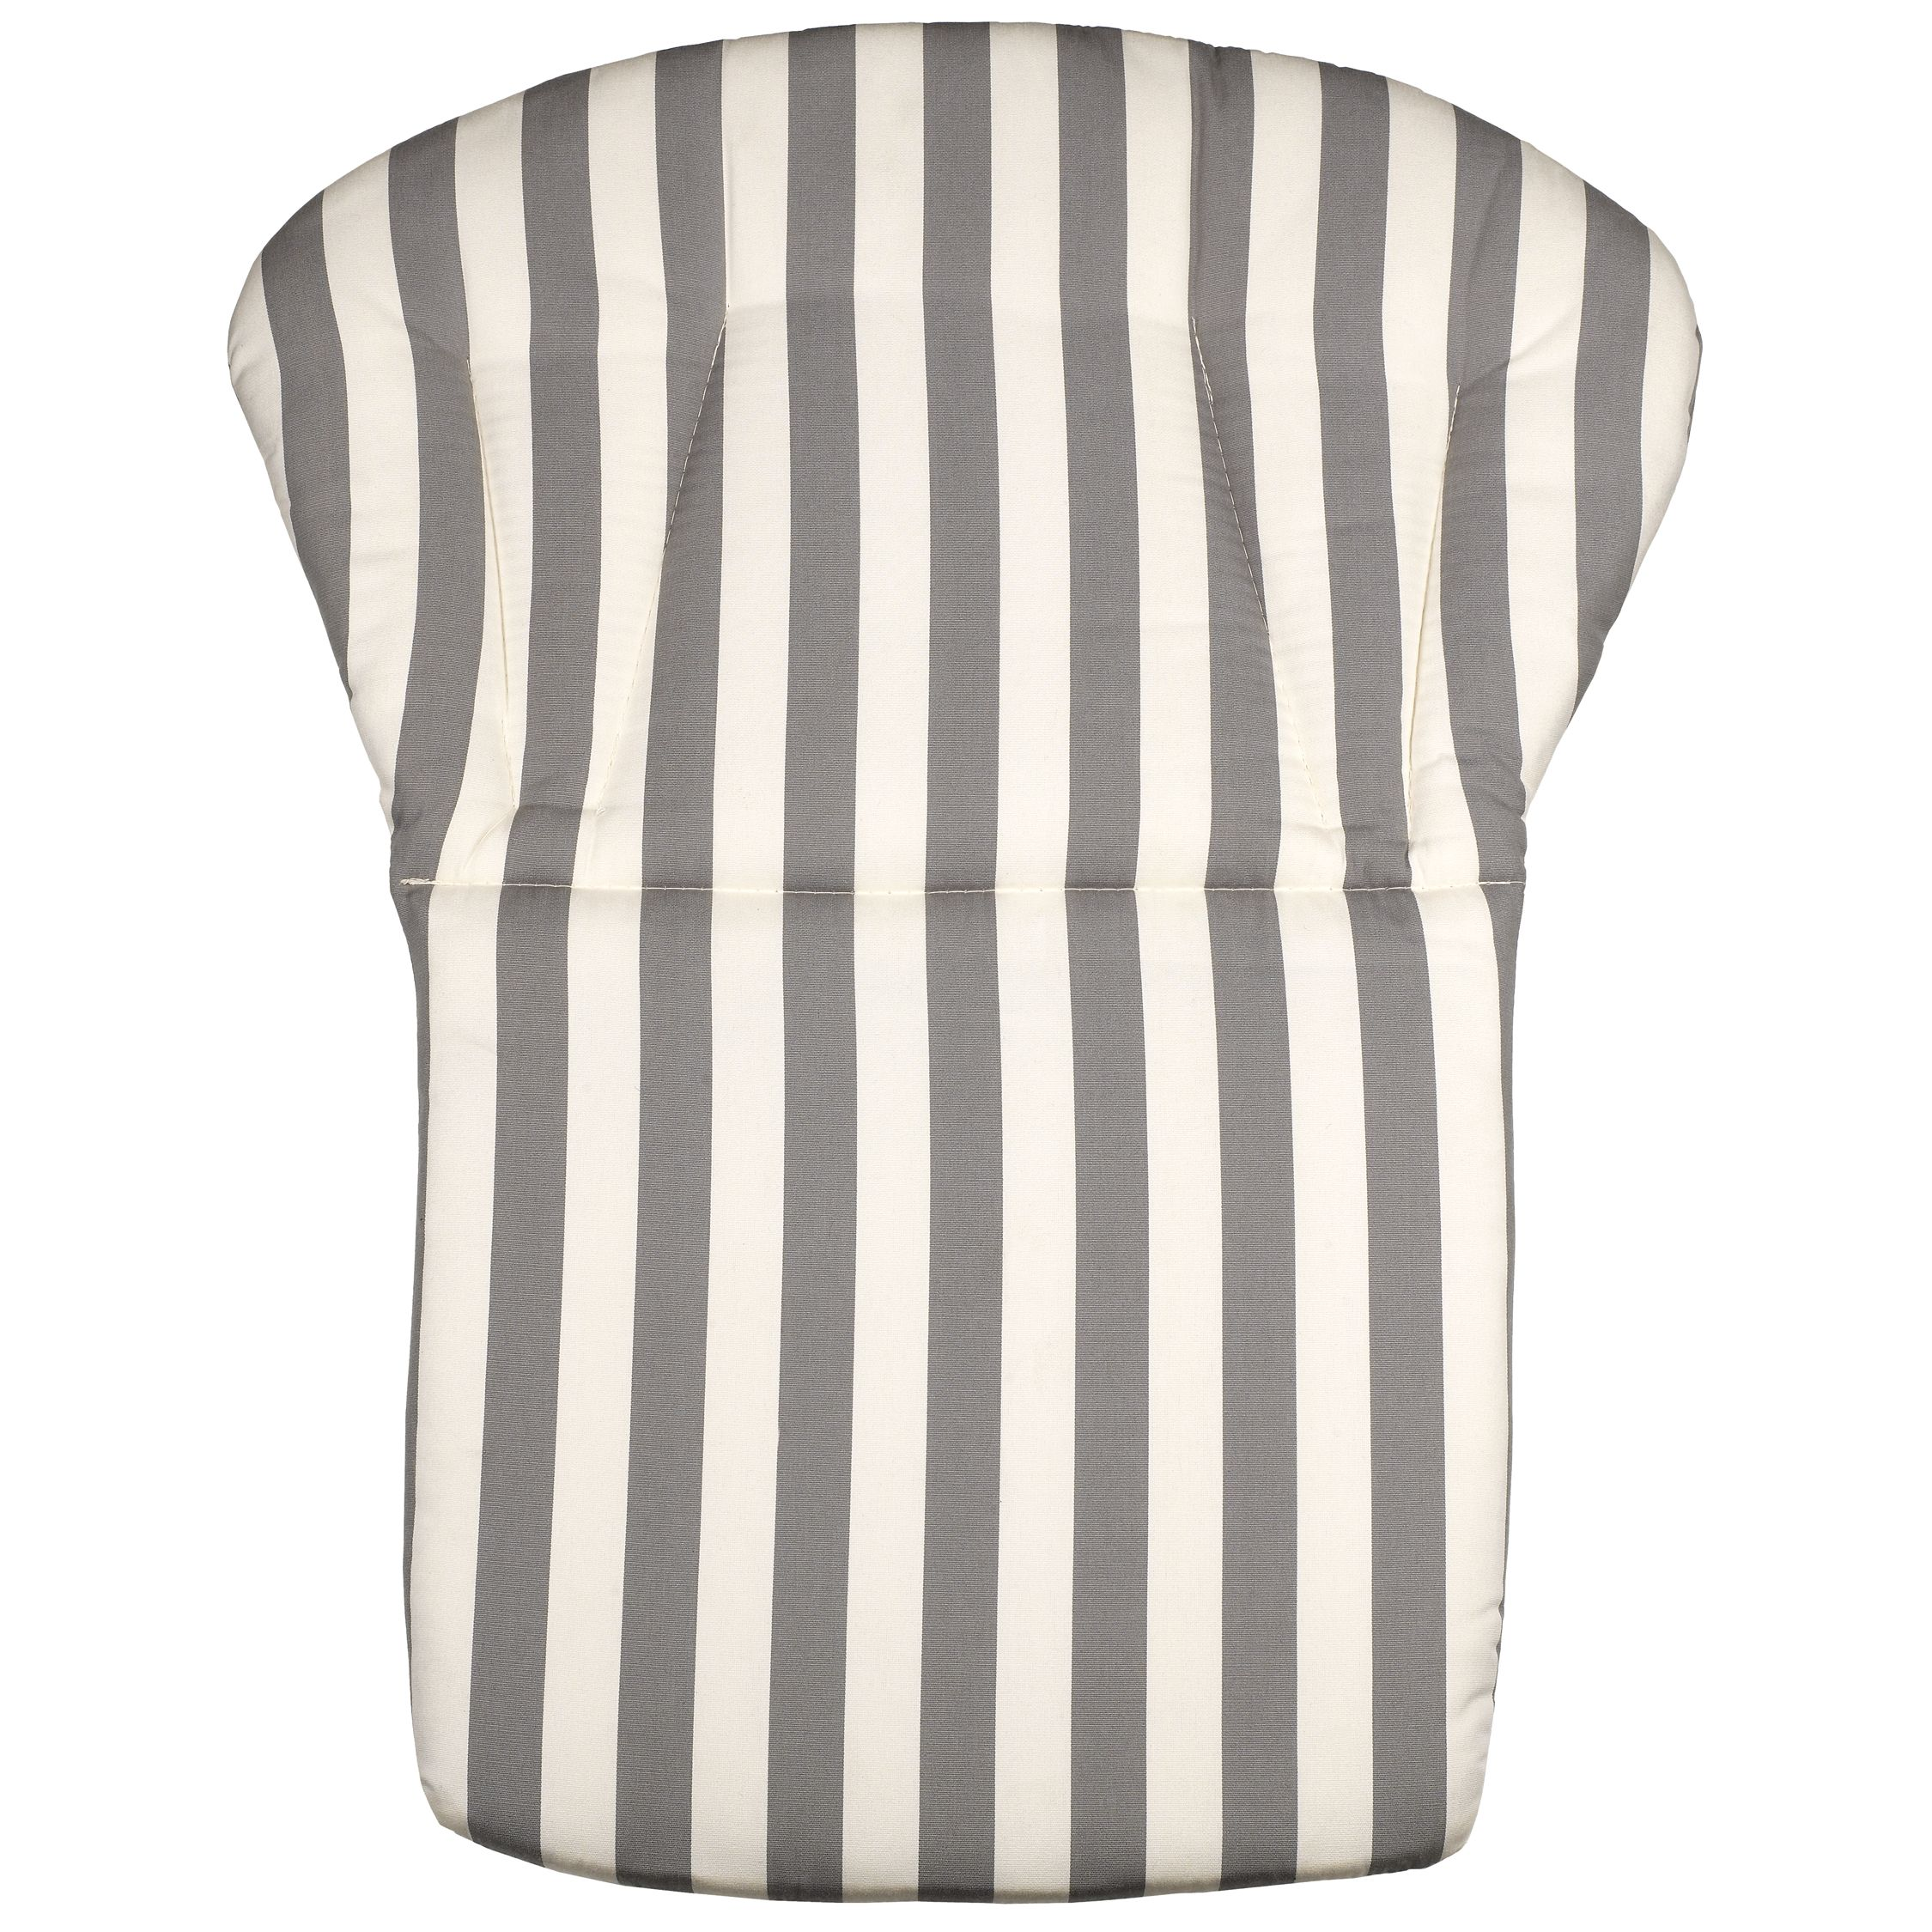 Royal Garden Elegance Chair Cushion, Stripe